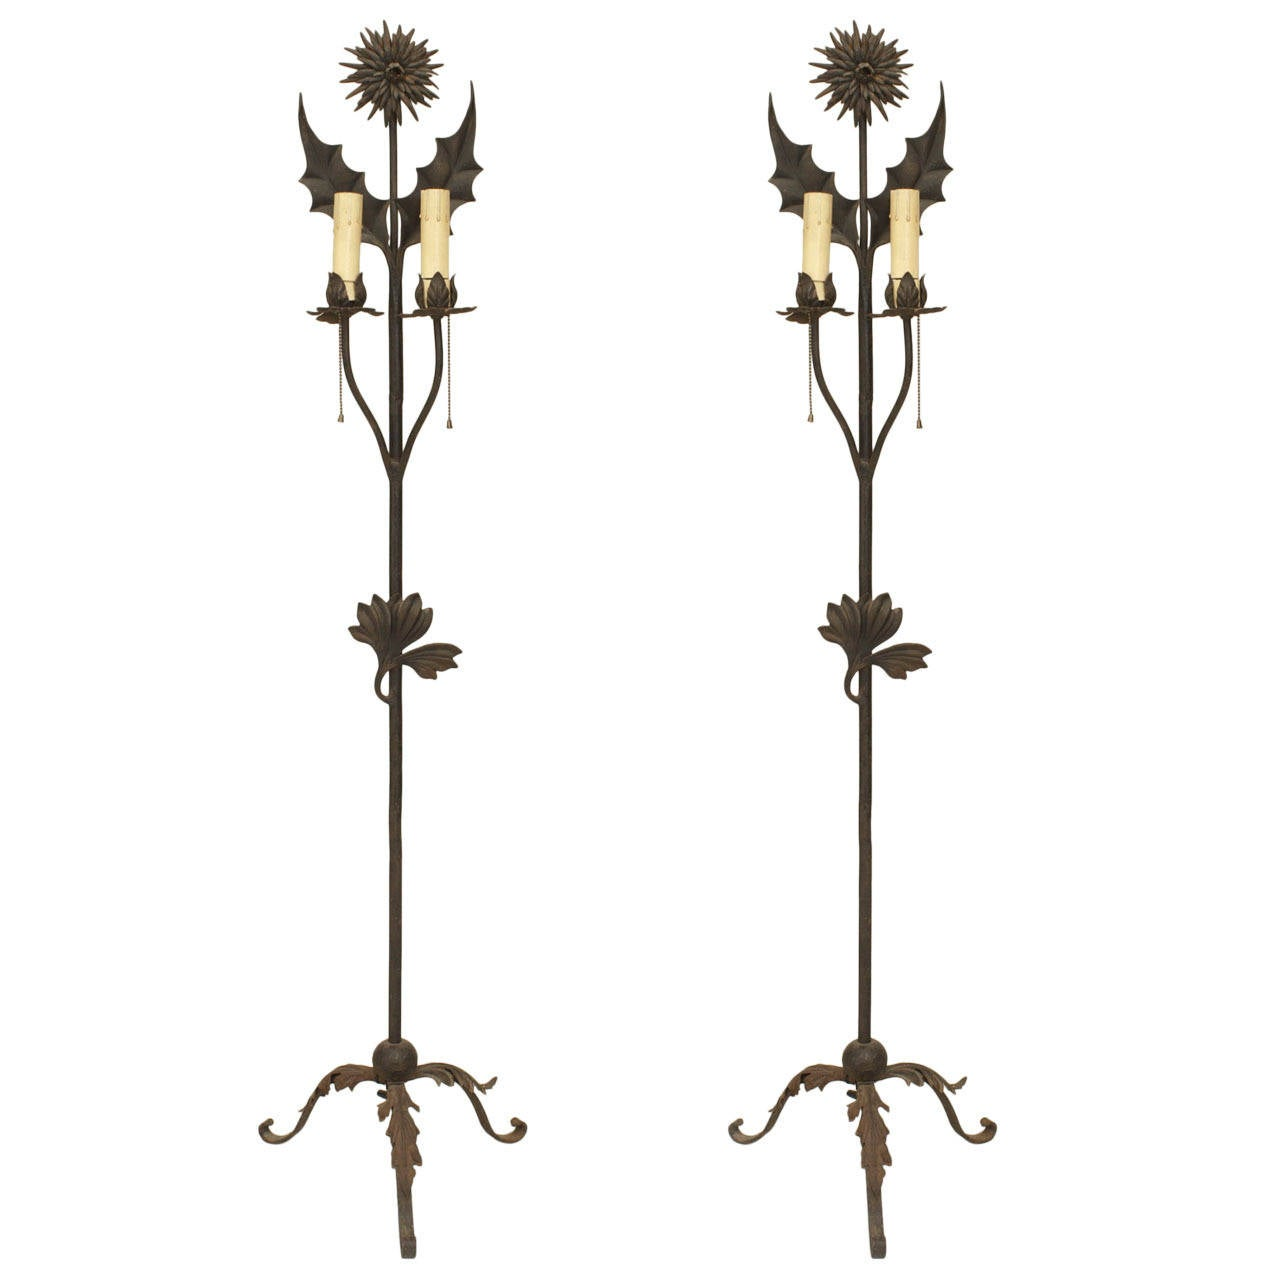 Pair of English Aesthetic Movement Wrought Iron Floor Torchieres